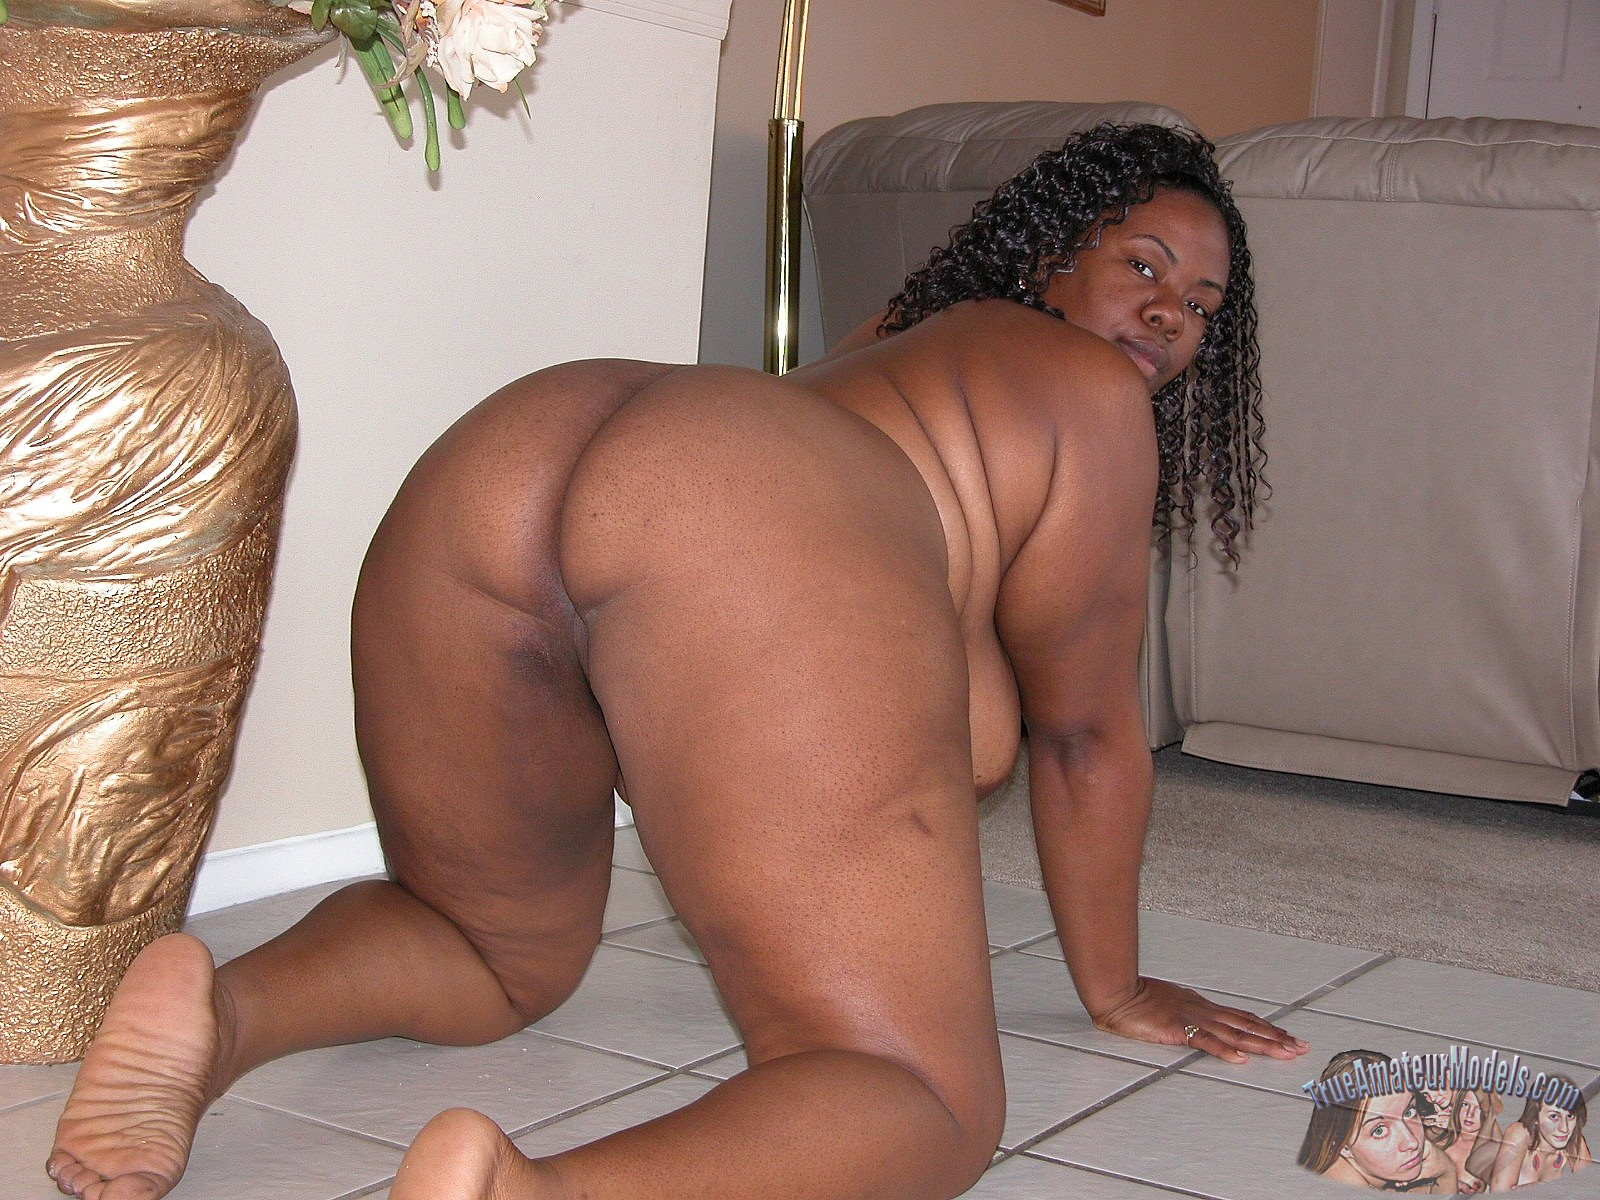 Black Bbw Woman Modeling Nude And Spreading Apart Her -5452